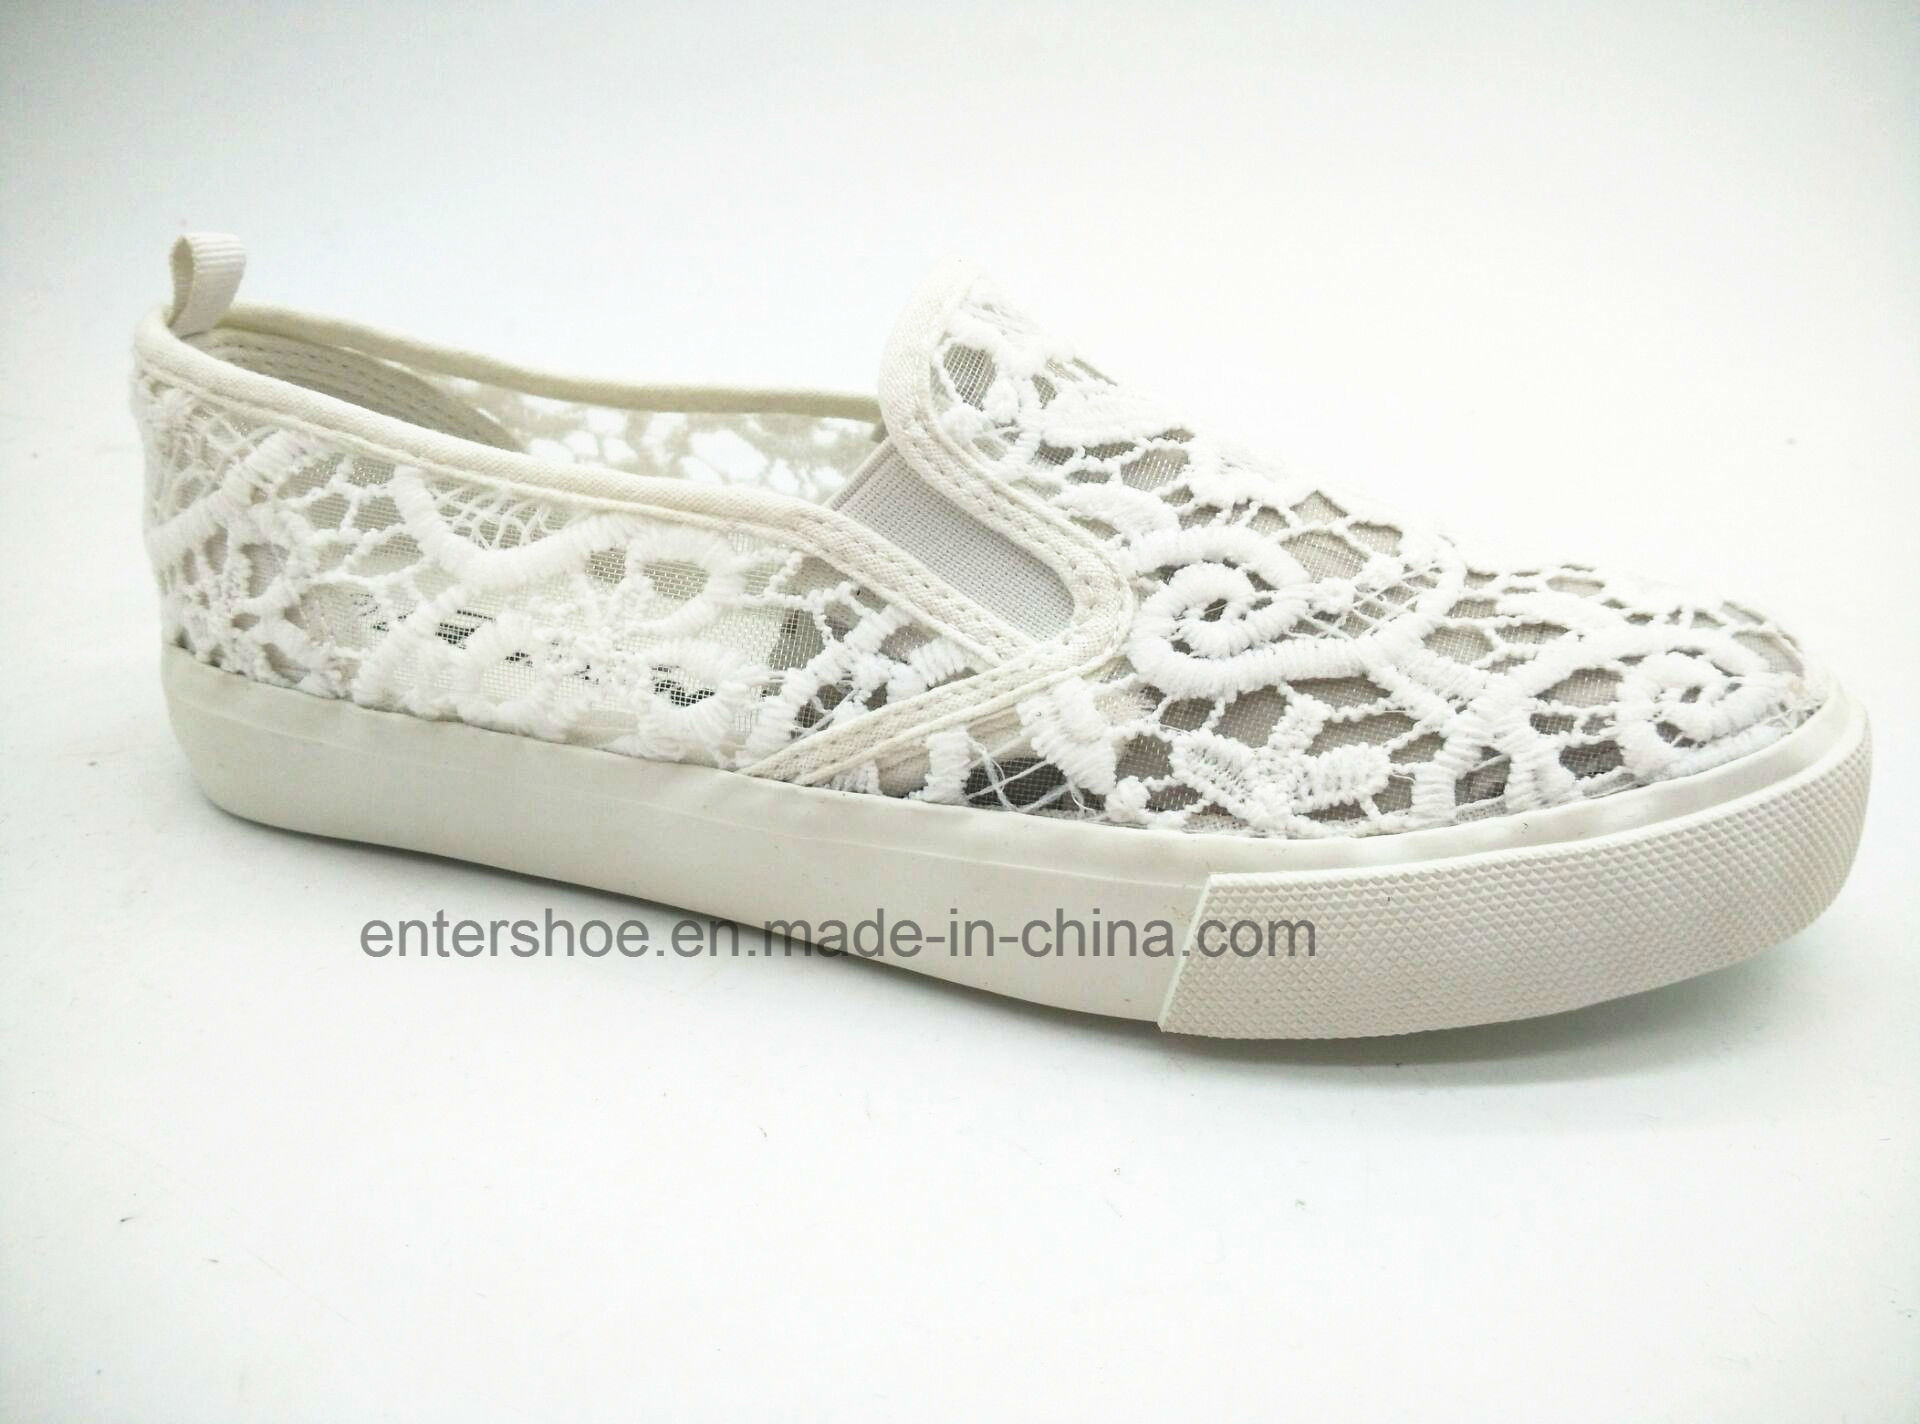 Hot Sale Vulcanized Summer Women Shoes with Rubber Sole